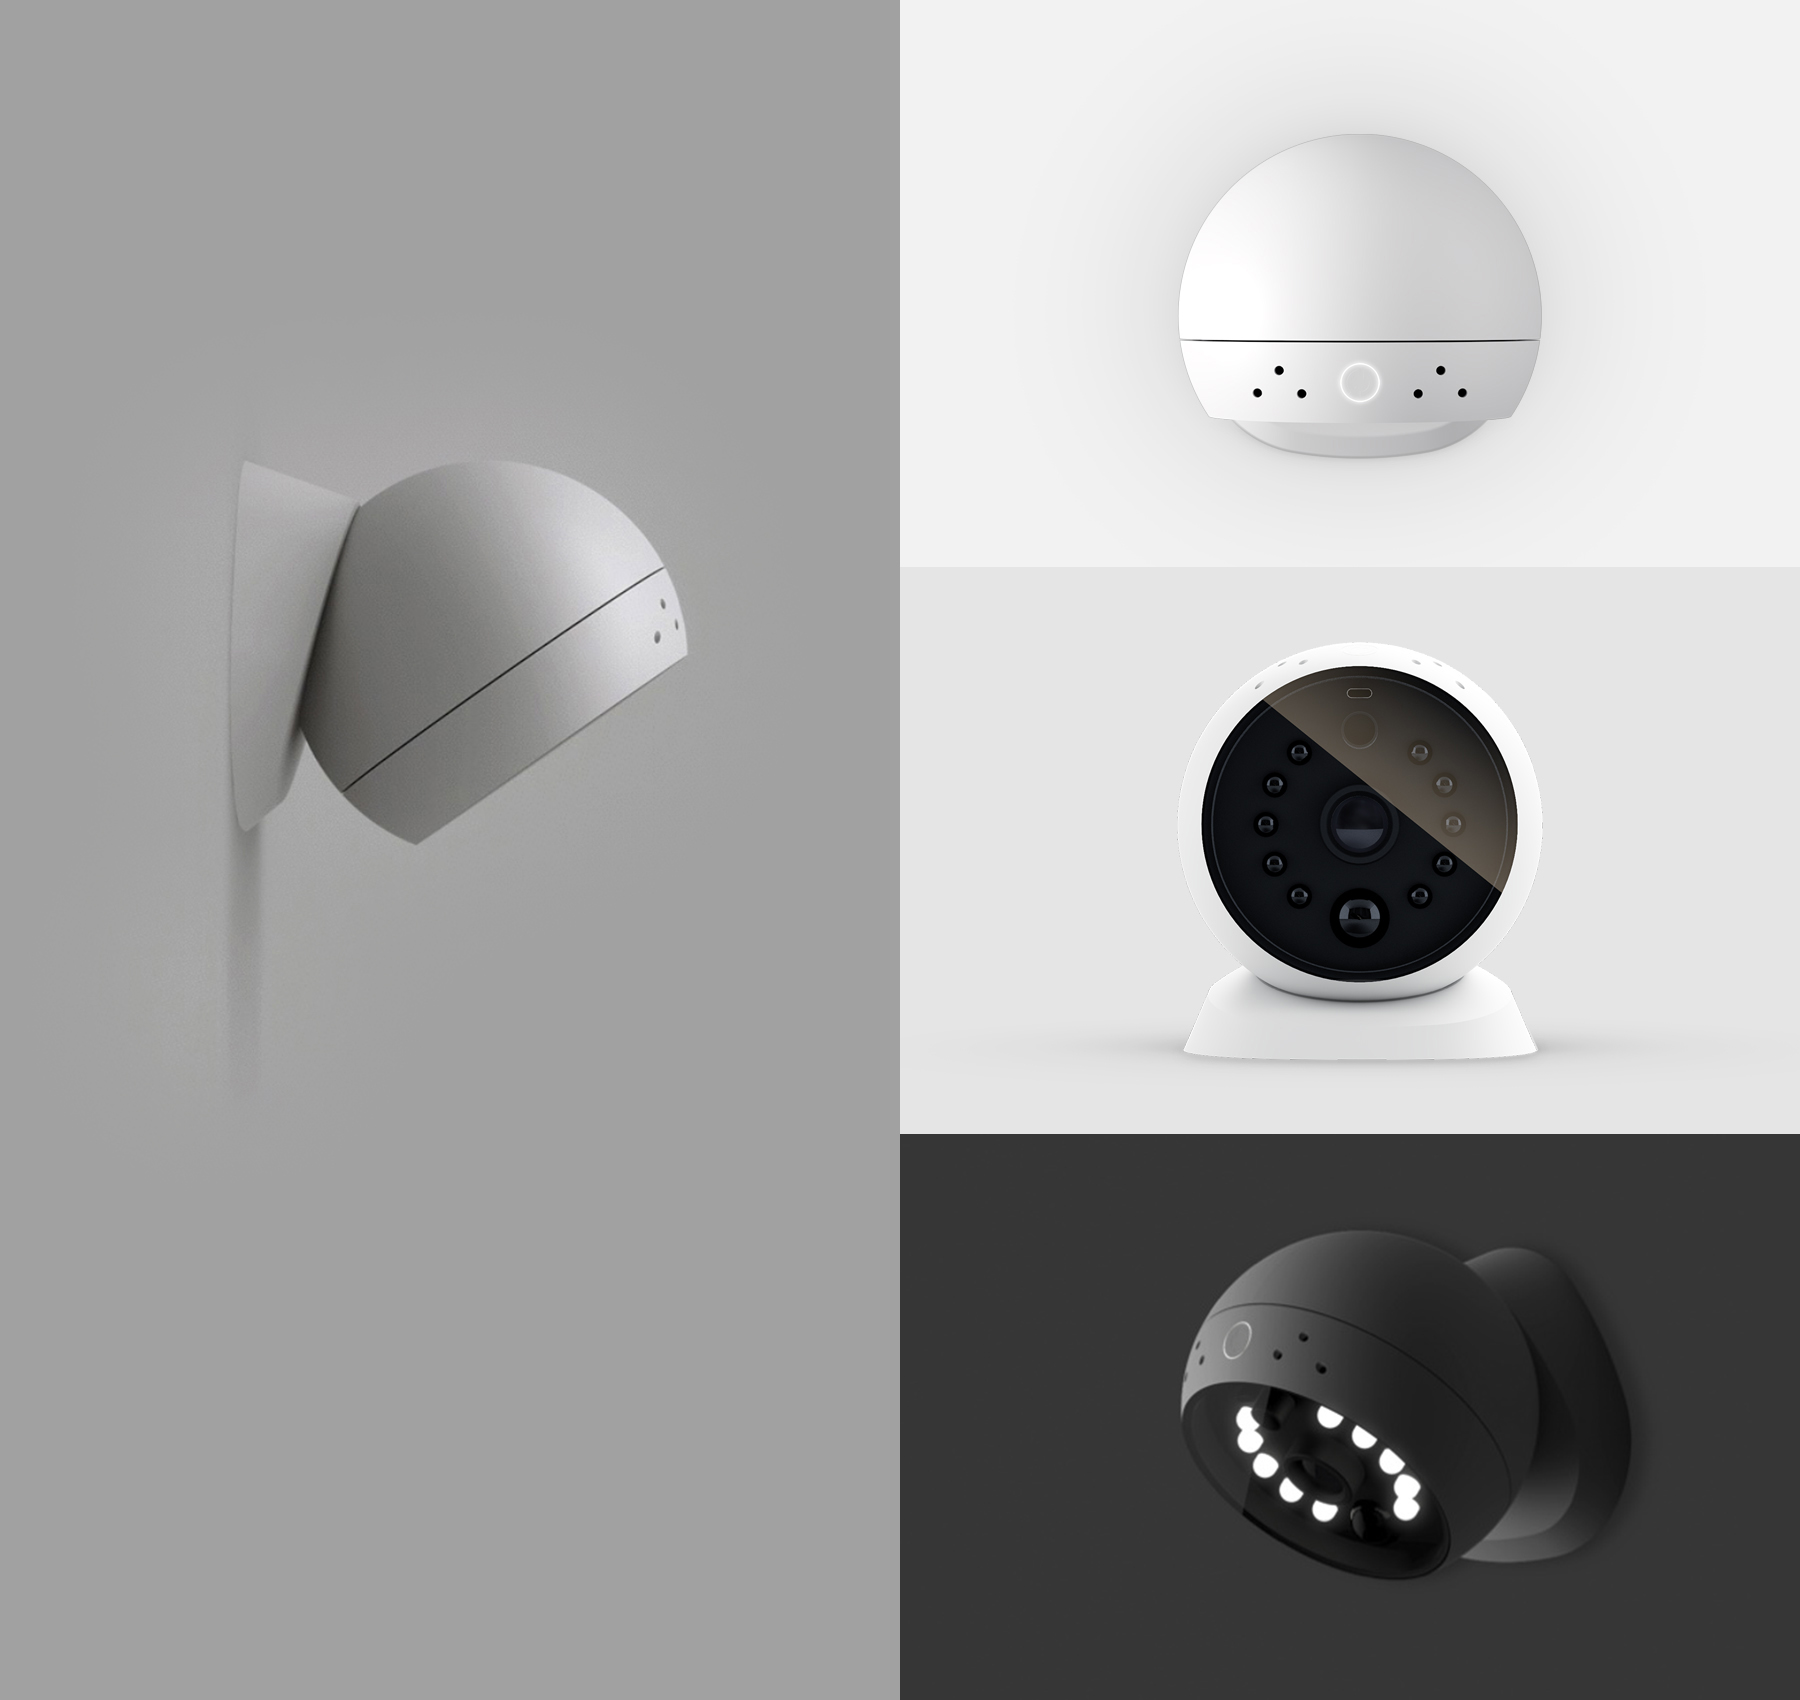 The camera has a built-in motion sensor that sends an alert to users' devices whenever it detects movement. The body is attached to a magnetic base, which allows for easy detachment and independent use as well as rotation in any angle or direction, and built-in LED lights for night mode.